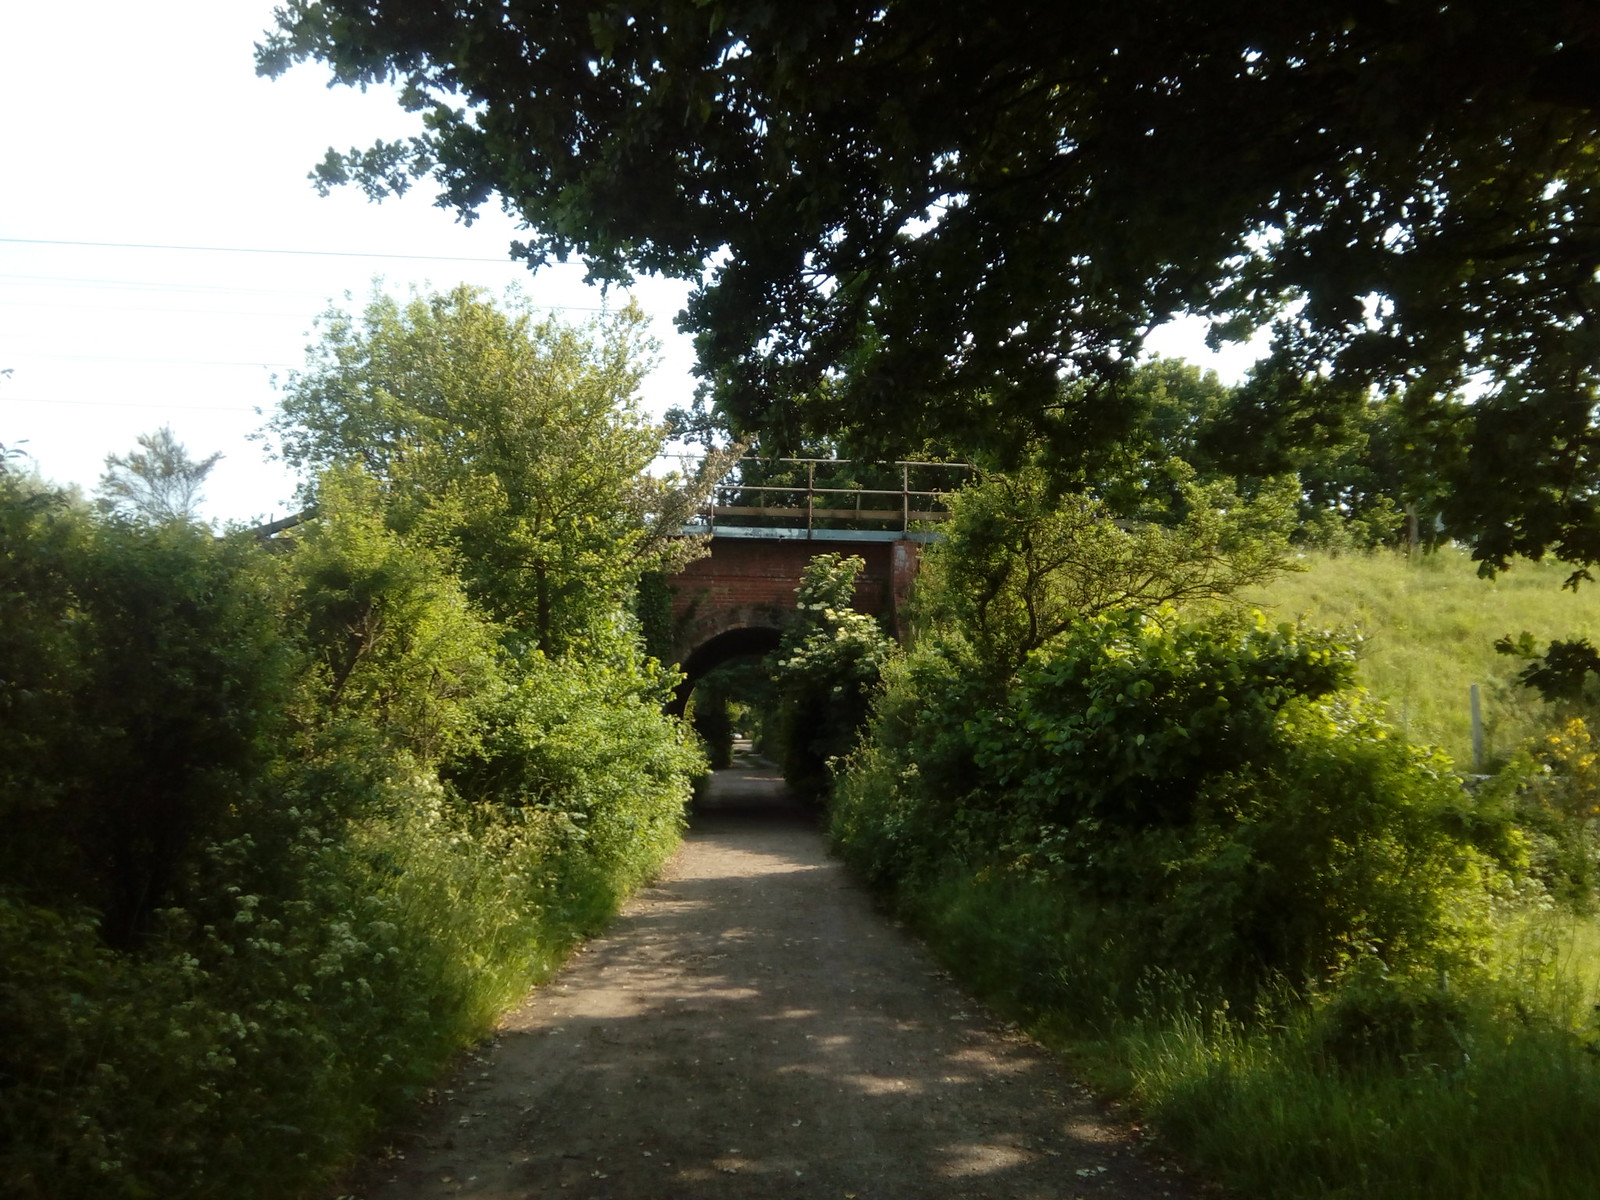 Railway bridge before Manningtree Station Softened by the vigorous growth along the roadside embankment